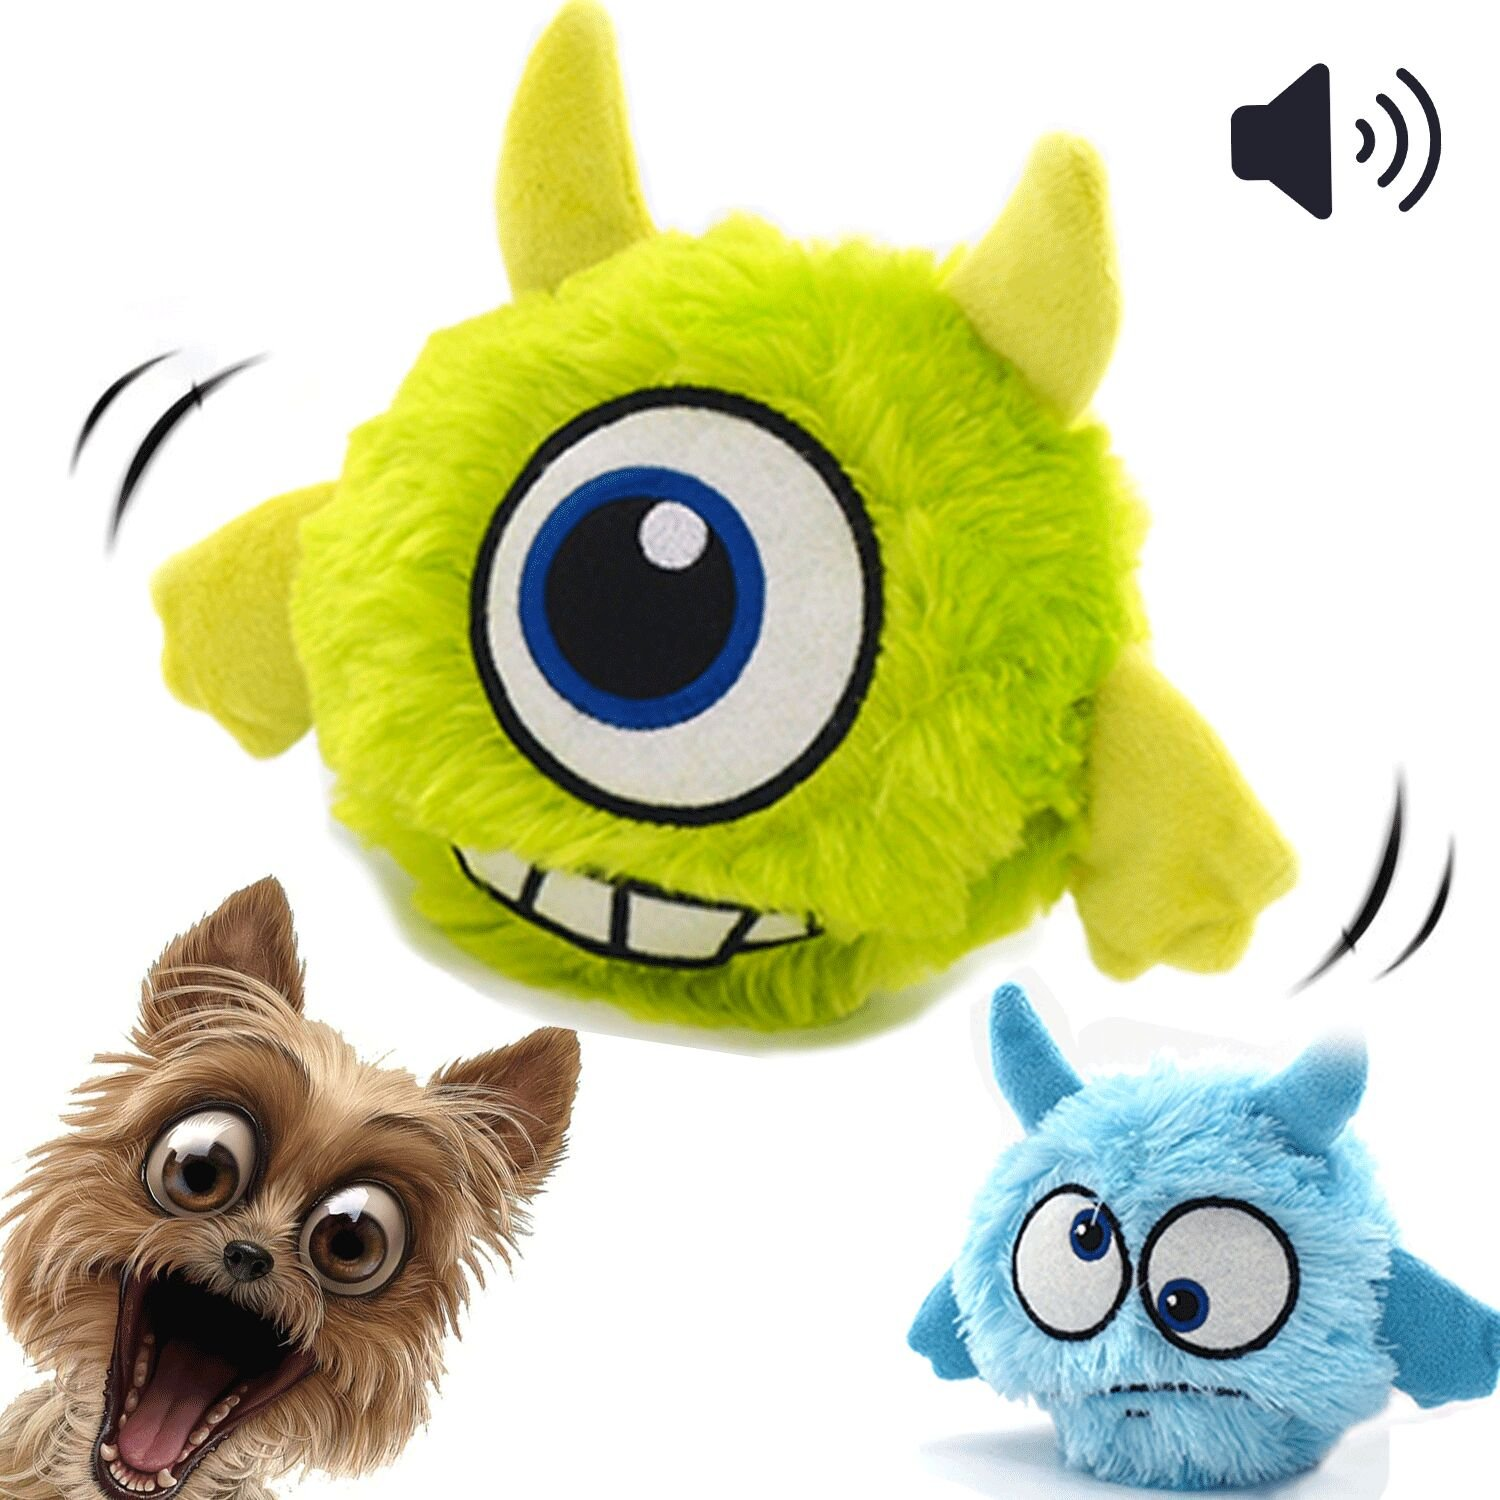 Interactive Dog Toy Plush Squeaky Giggle Ball Automatic Electronic Shake Crazy Bouncer Dog Toys For Exercise Entertainment Boredom For Small to Medium Dogs - Best Christmas Birthday Gift For Puppy … by FIRIK (Image #1)